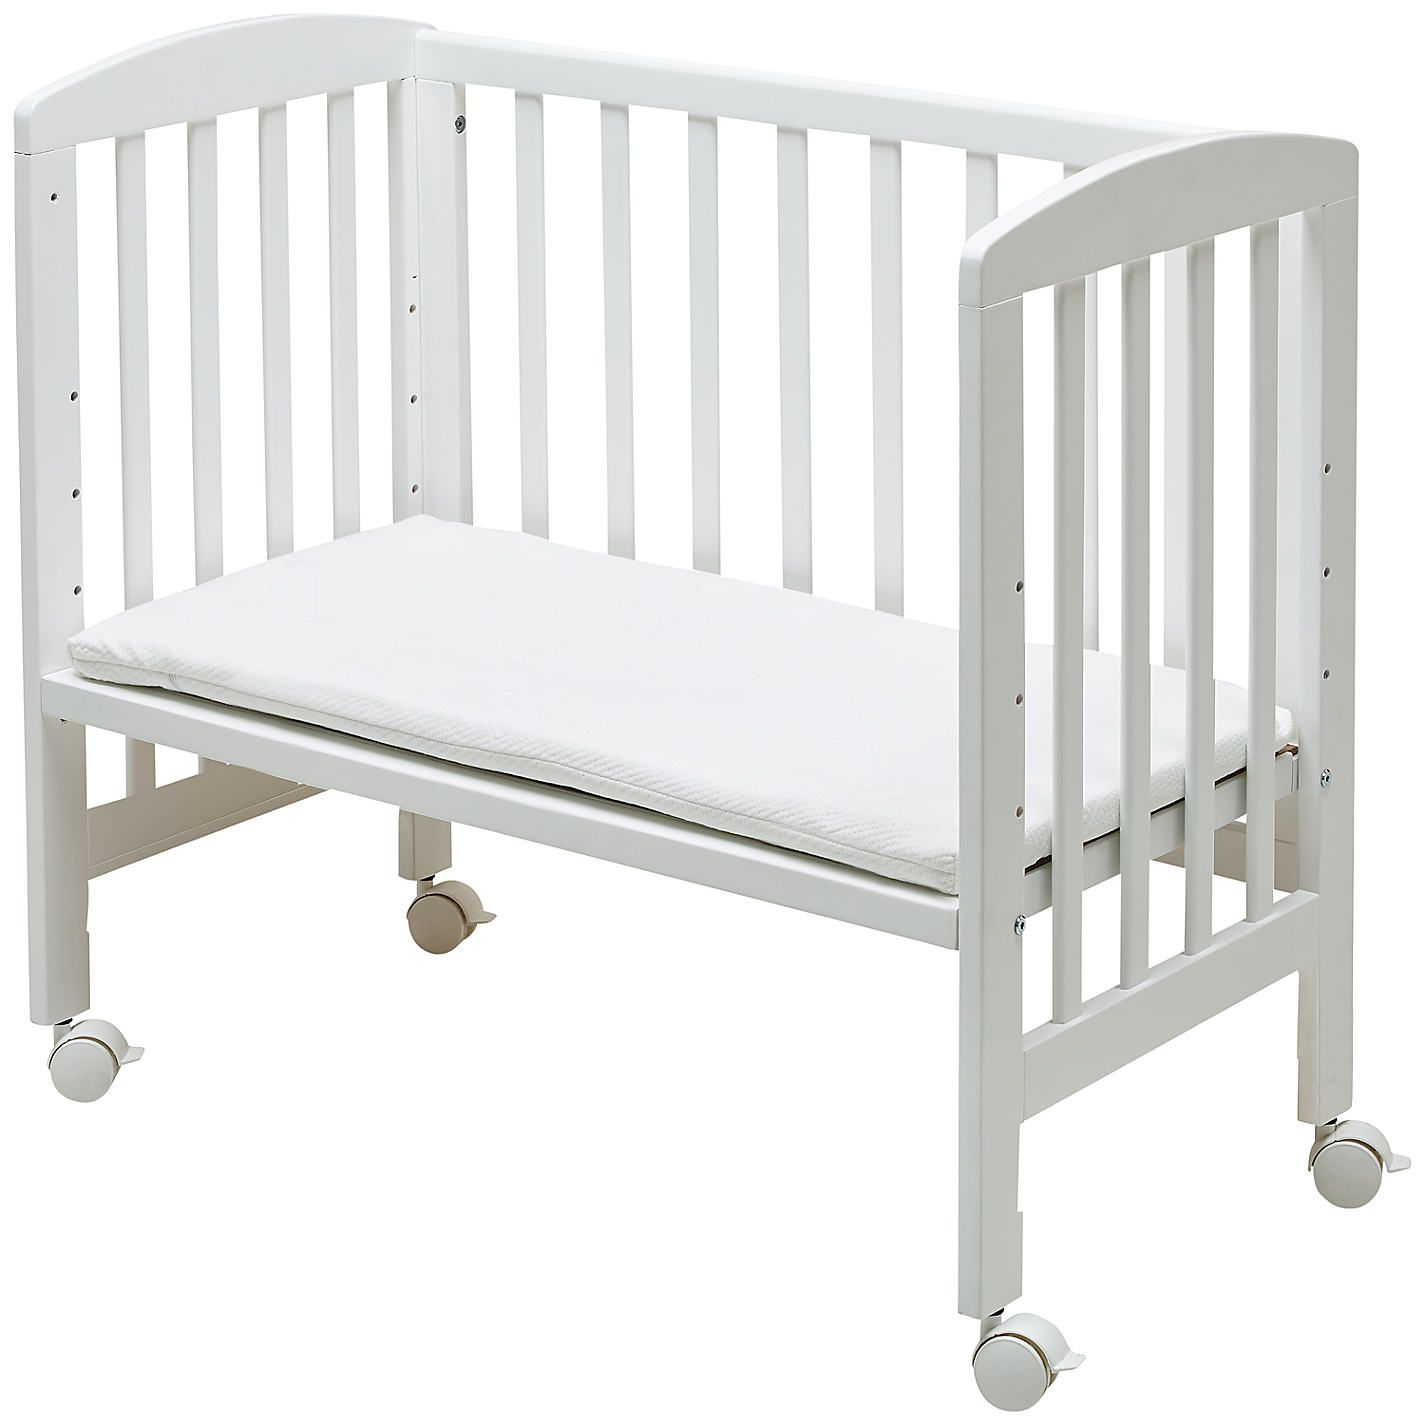 Baby cribs john lewis - Baby Bed John Lewis Buy Babydan 3 In 1 Side By Side Crib White From